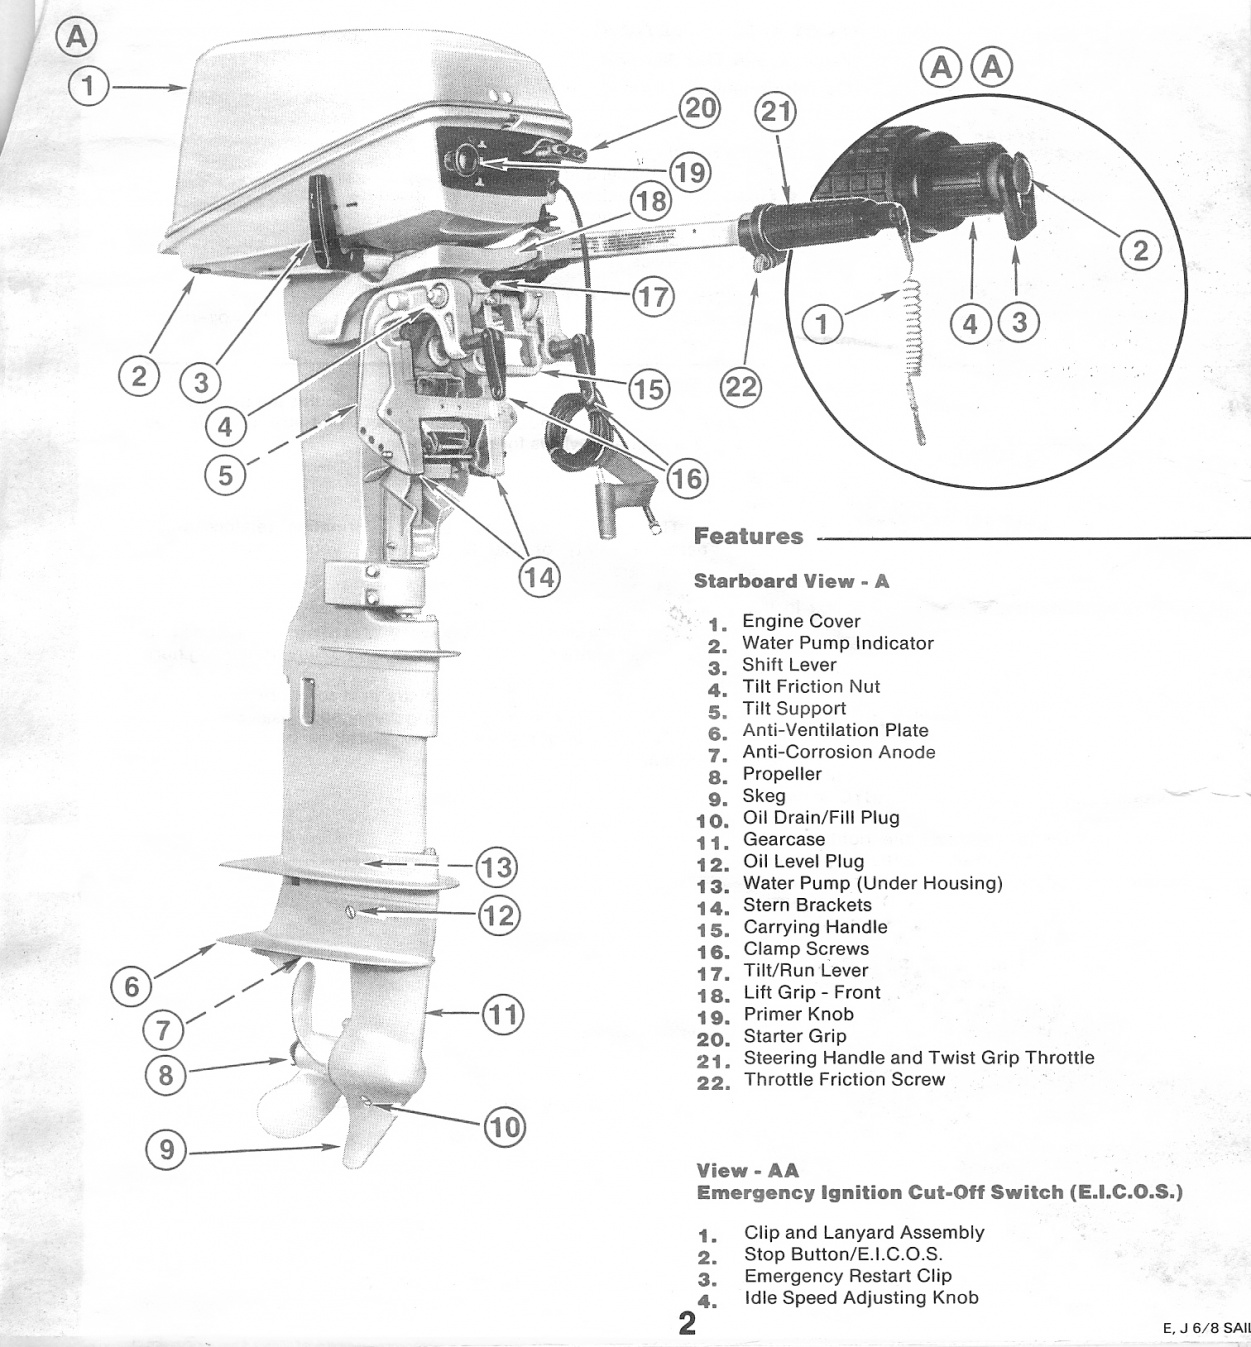 For Sale: 8 HP Evinrude Outboard Motor with extra long shaft